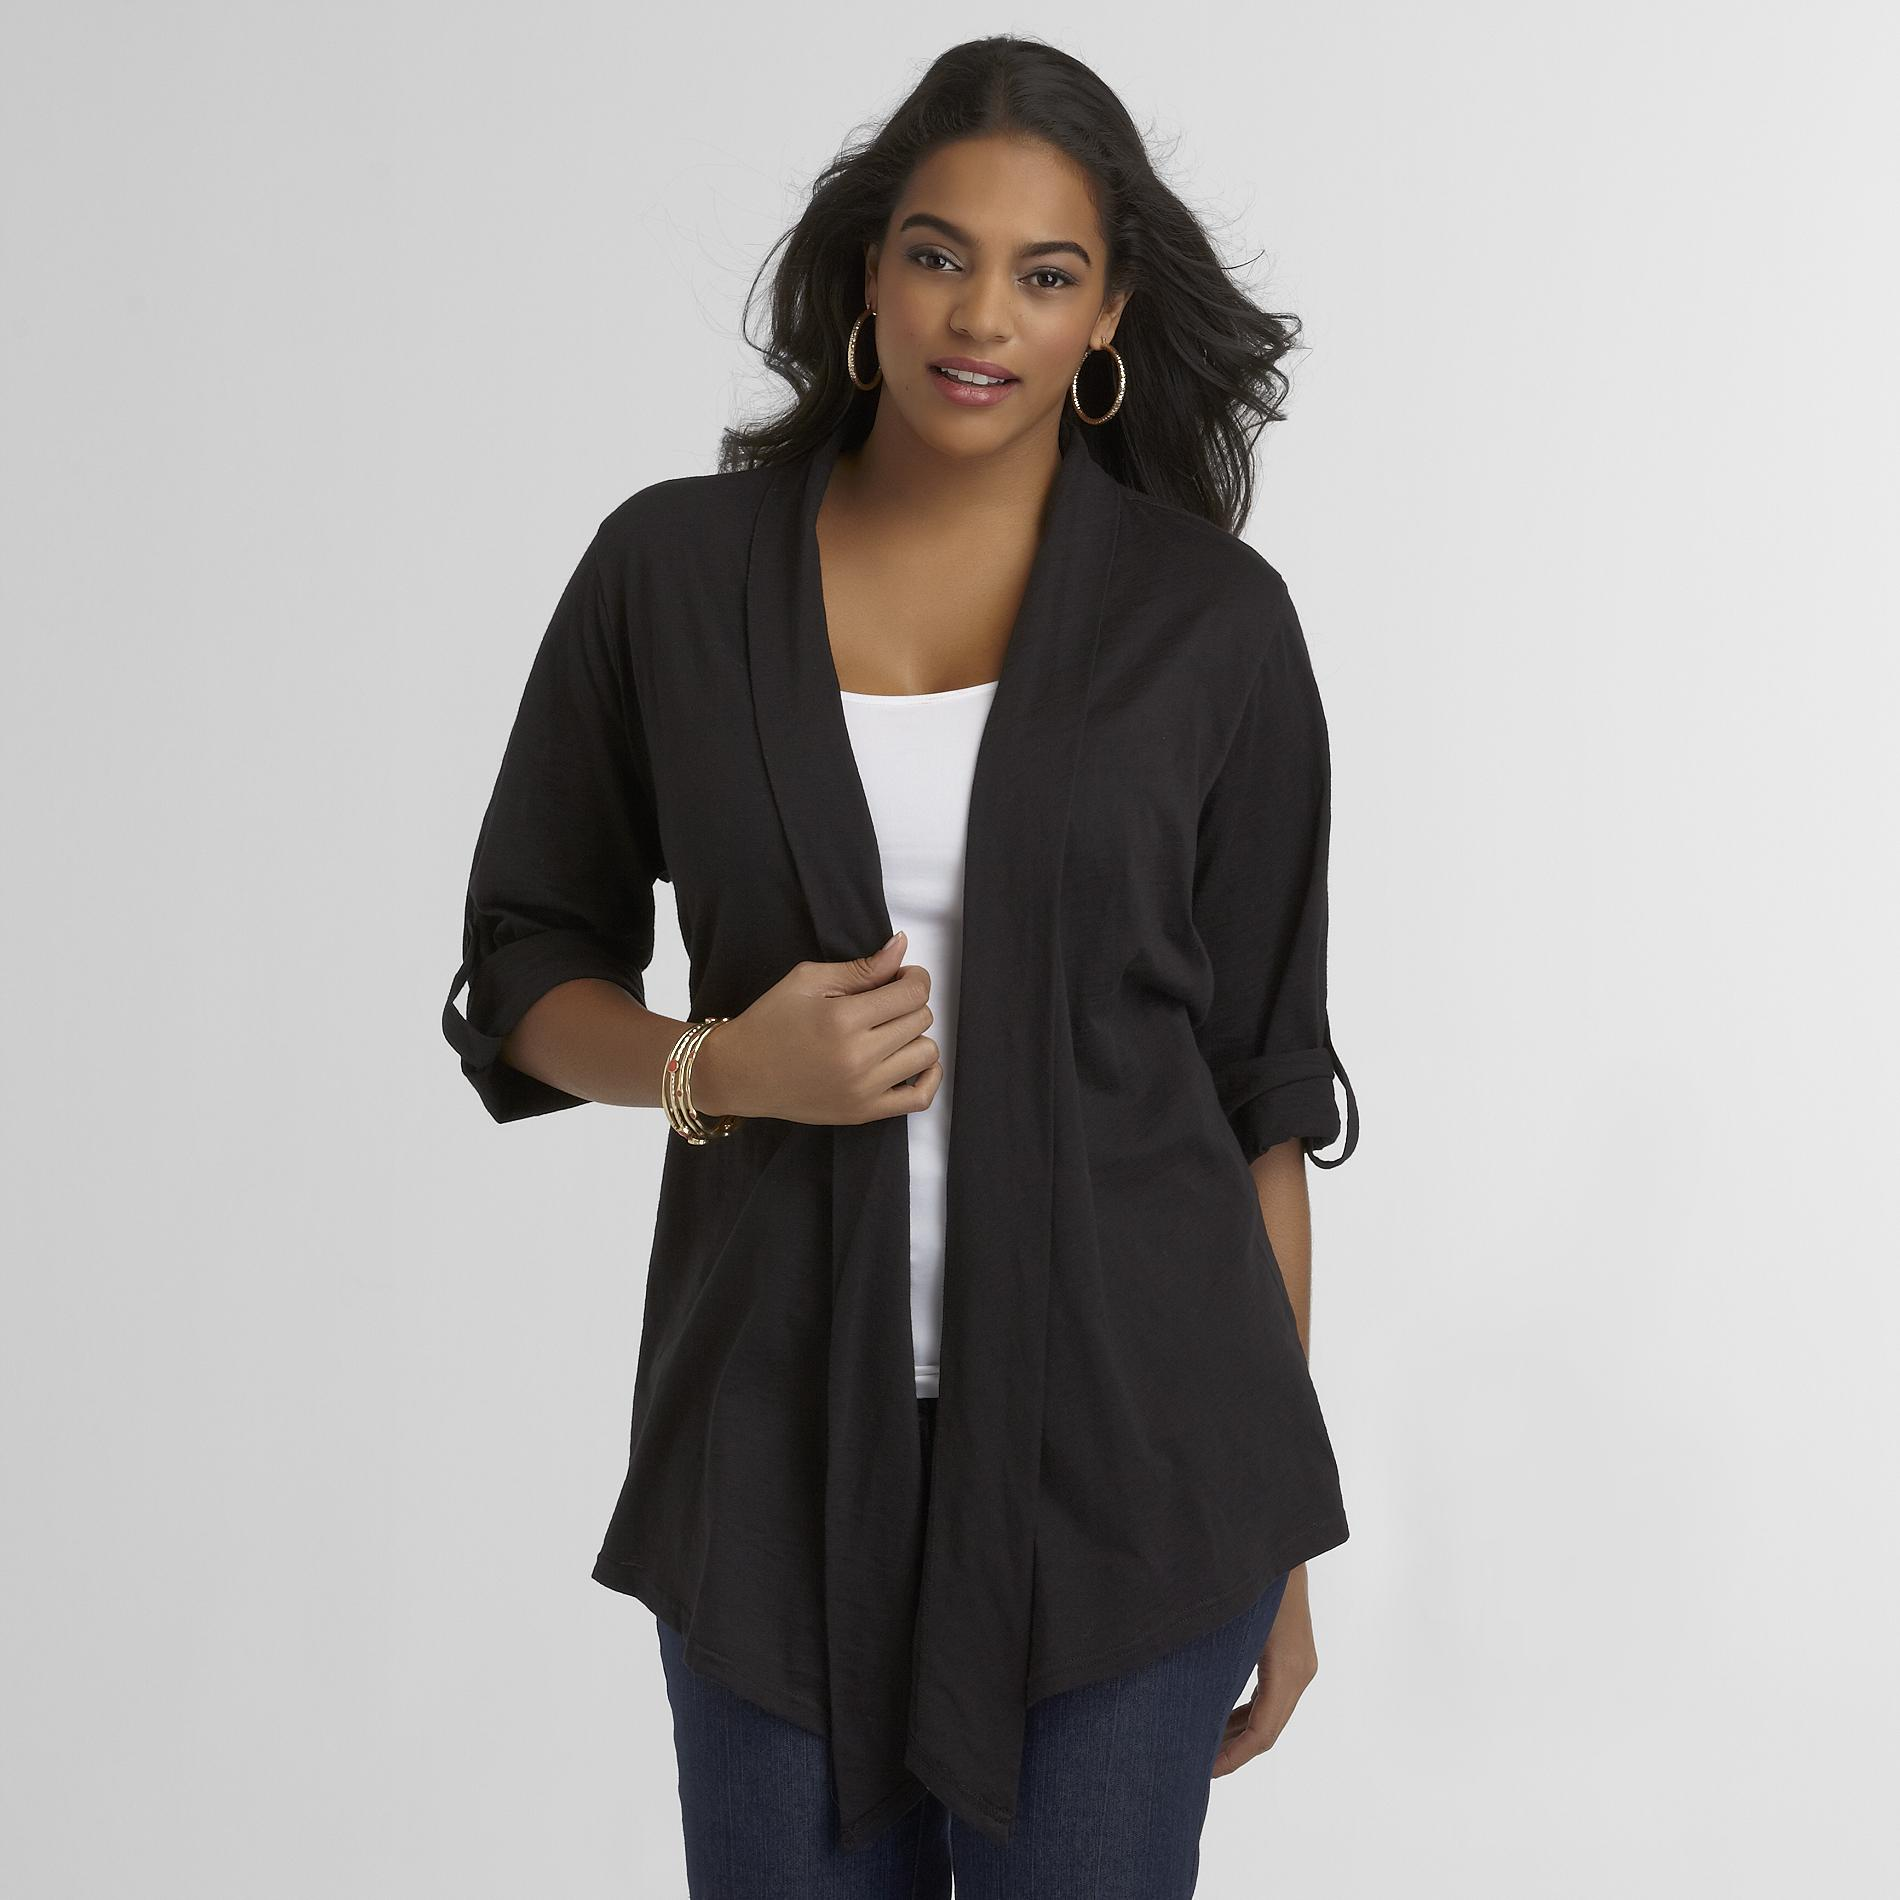 Basic Editions Women's Plus Knit Cardigan at Kmart.com